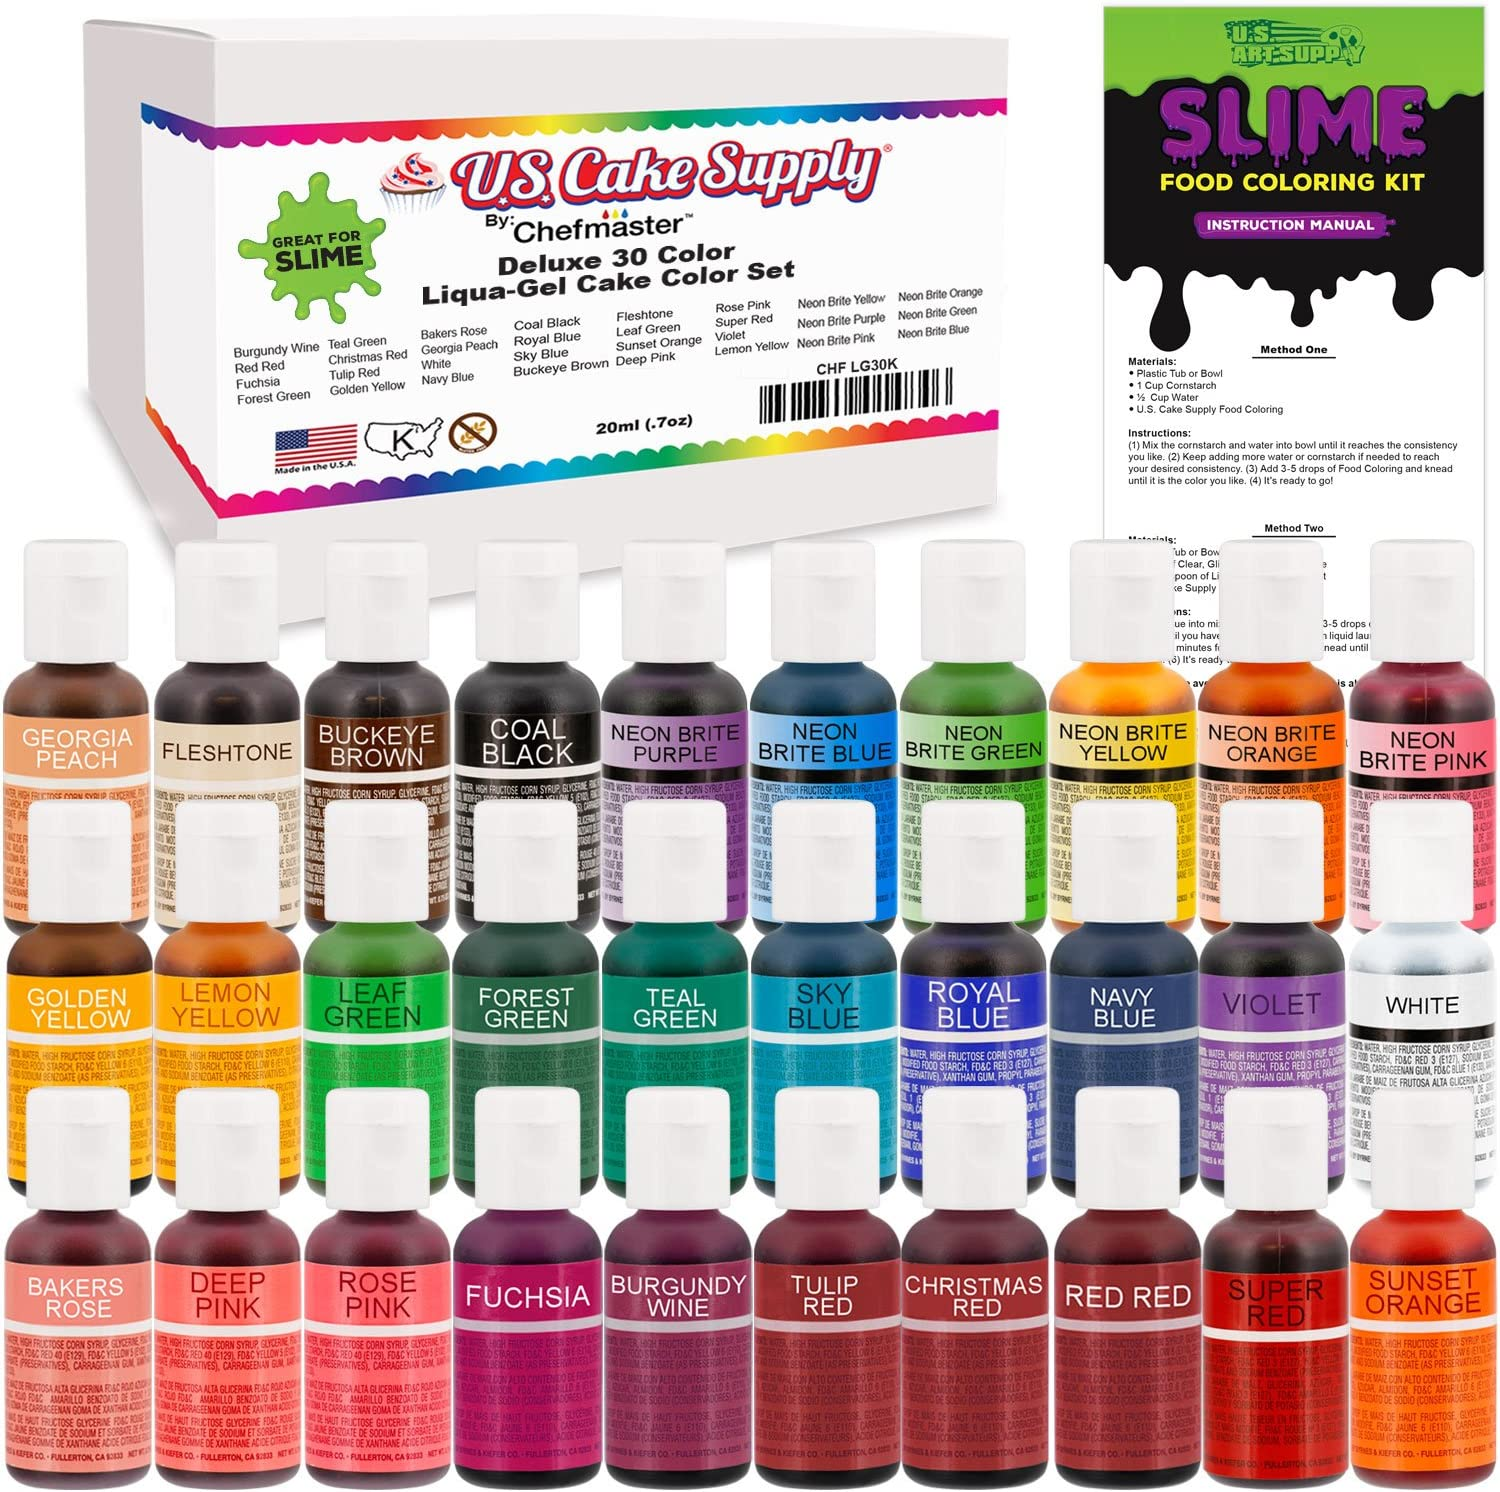 30 Color Food Coloring Liqua-Gel Ultimate Decorating Kit Primary, Secondary and Neon Colors – U.S. Art Supply Food Grade, 0.75 fl. oz. (20ml) Bottles, Non-Toxic Popular Colors